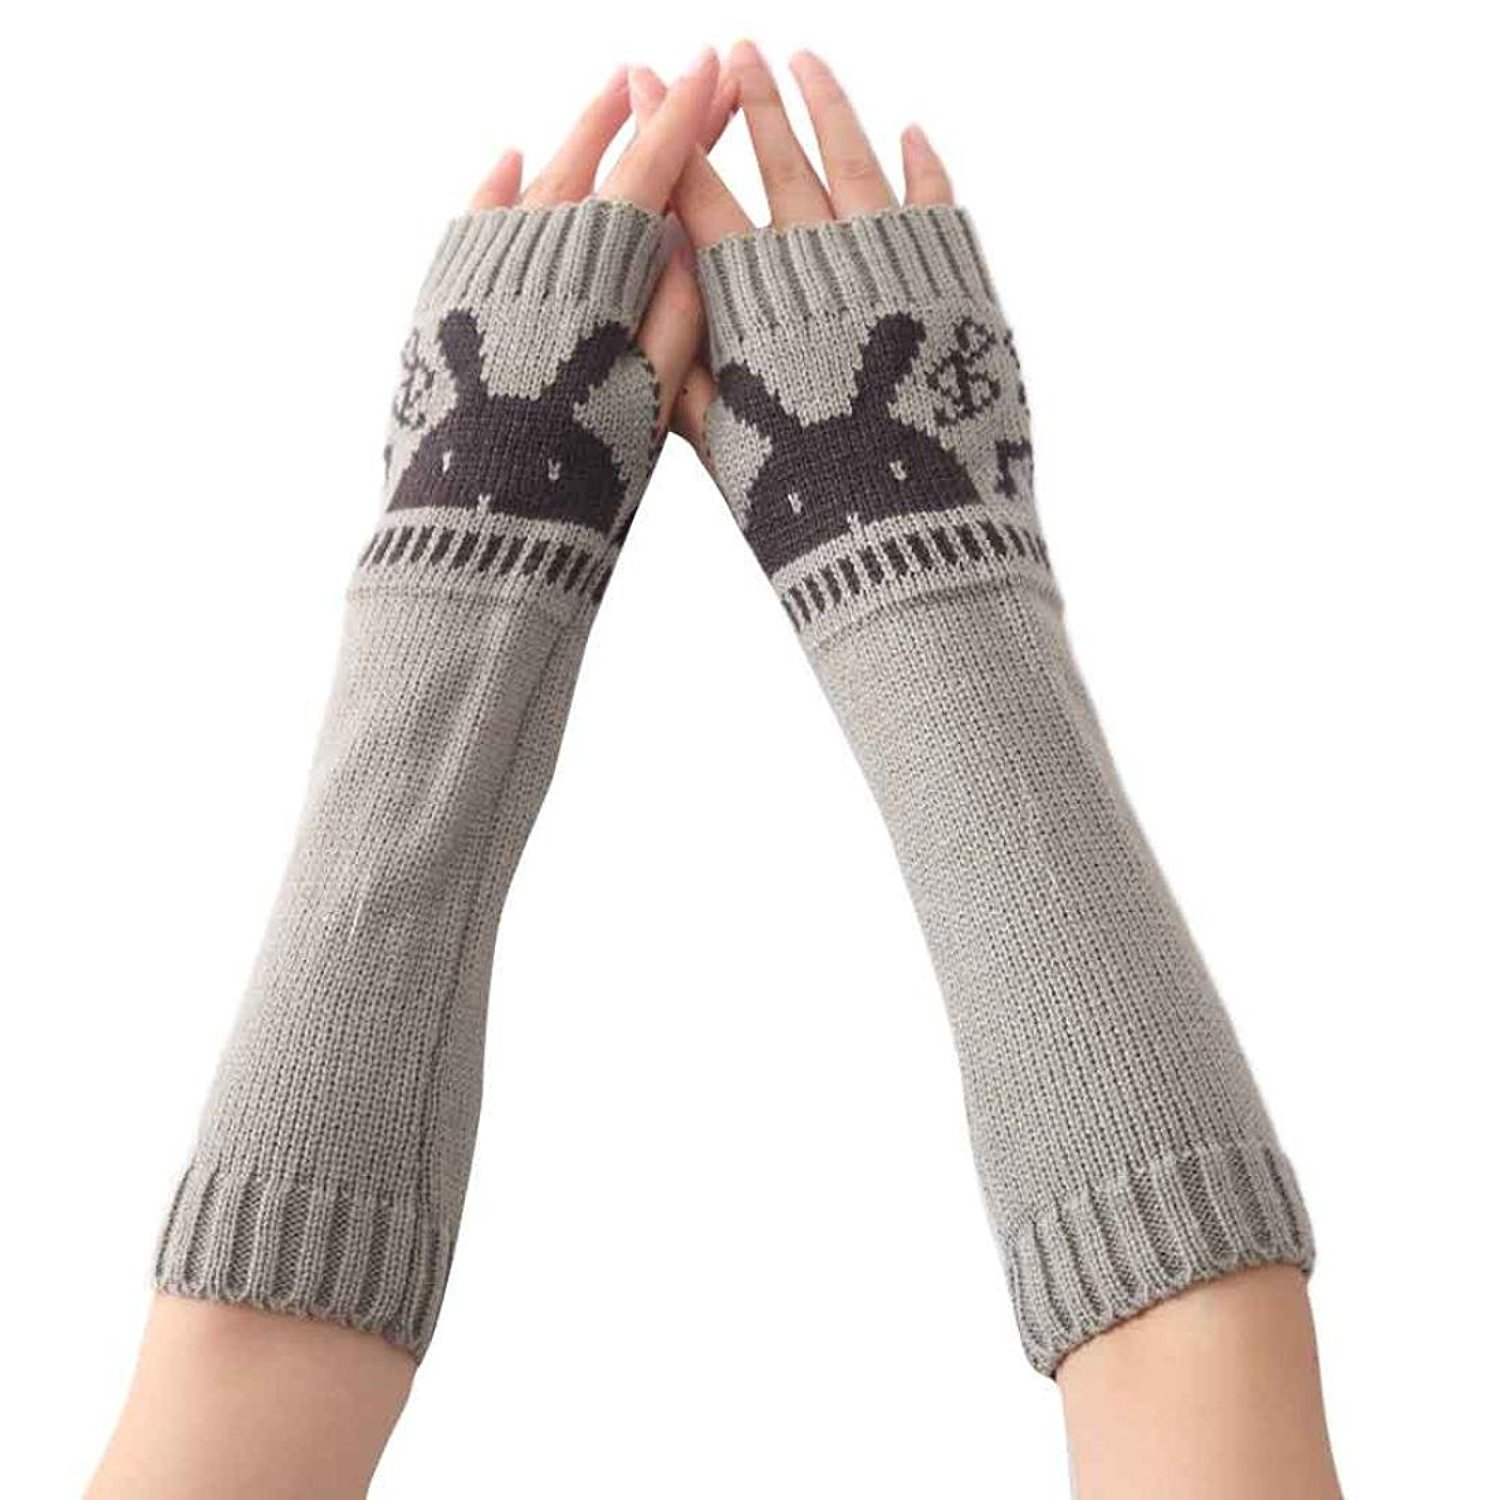 Kingko® Fashion Women's Rabbit Knitted Arm Sleeve Fingerless Winter Gloves Soft Warm Mitten